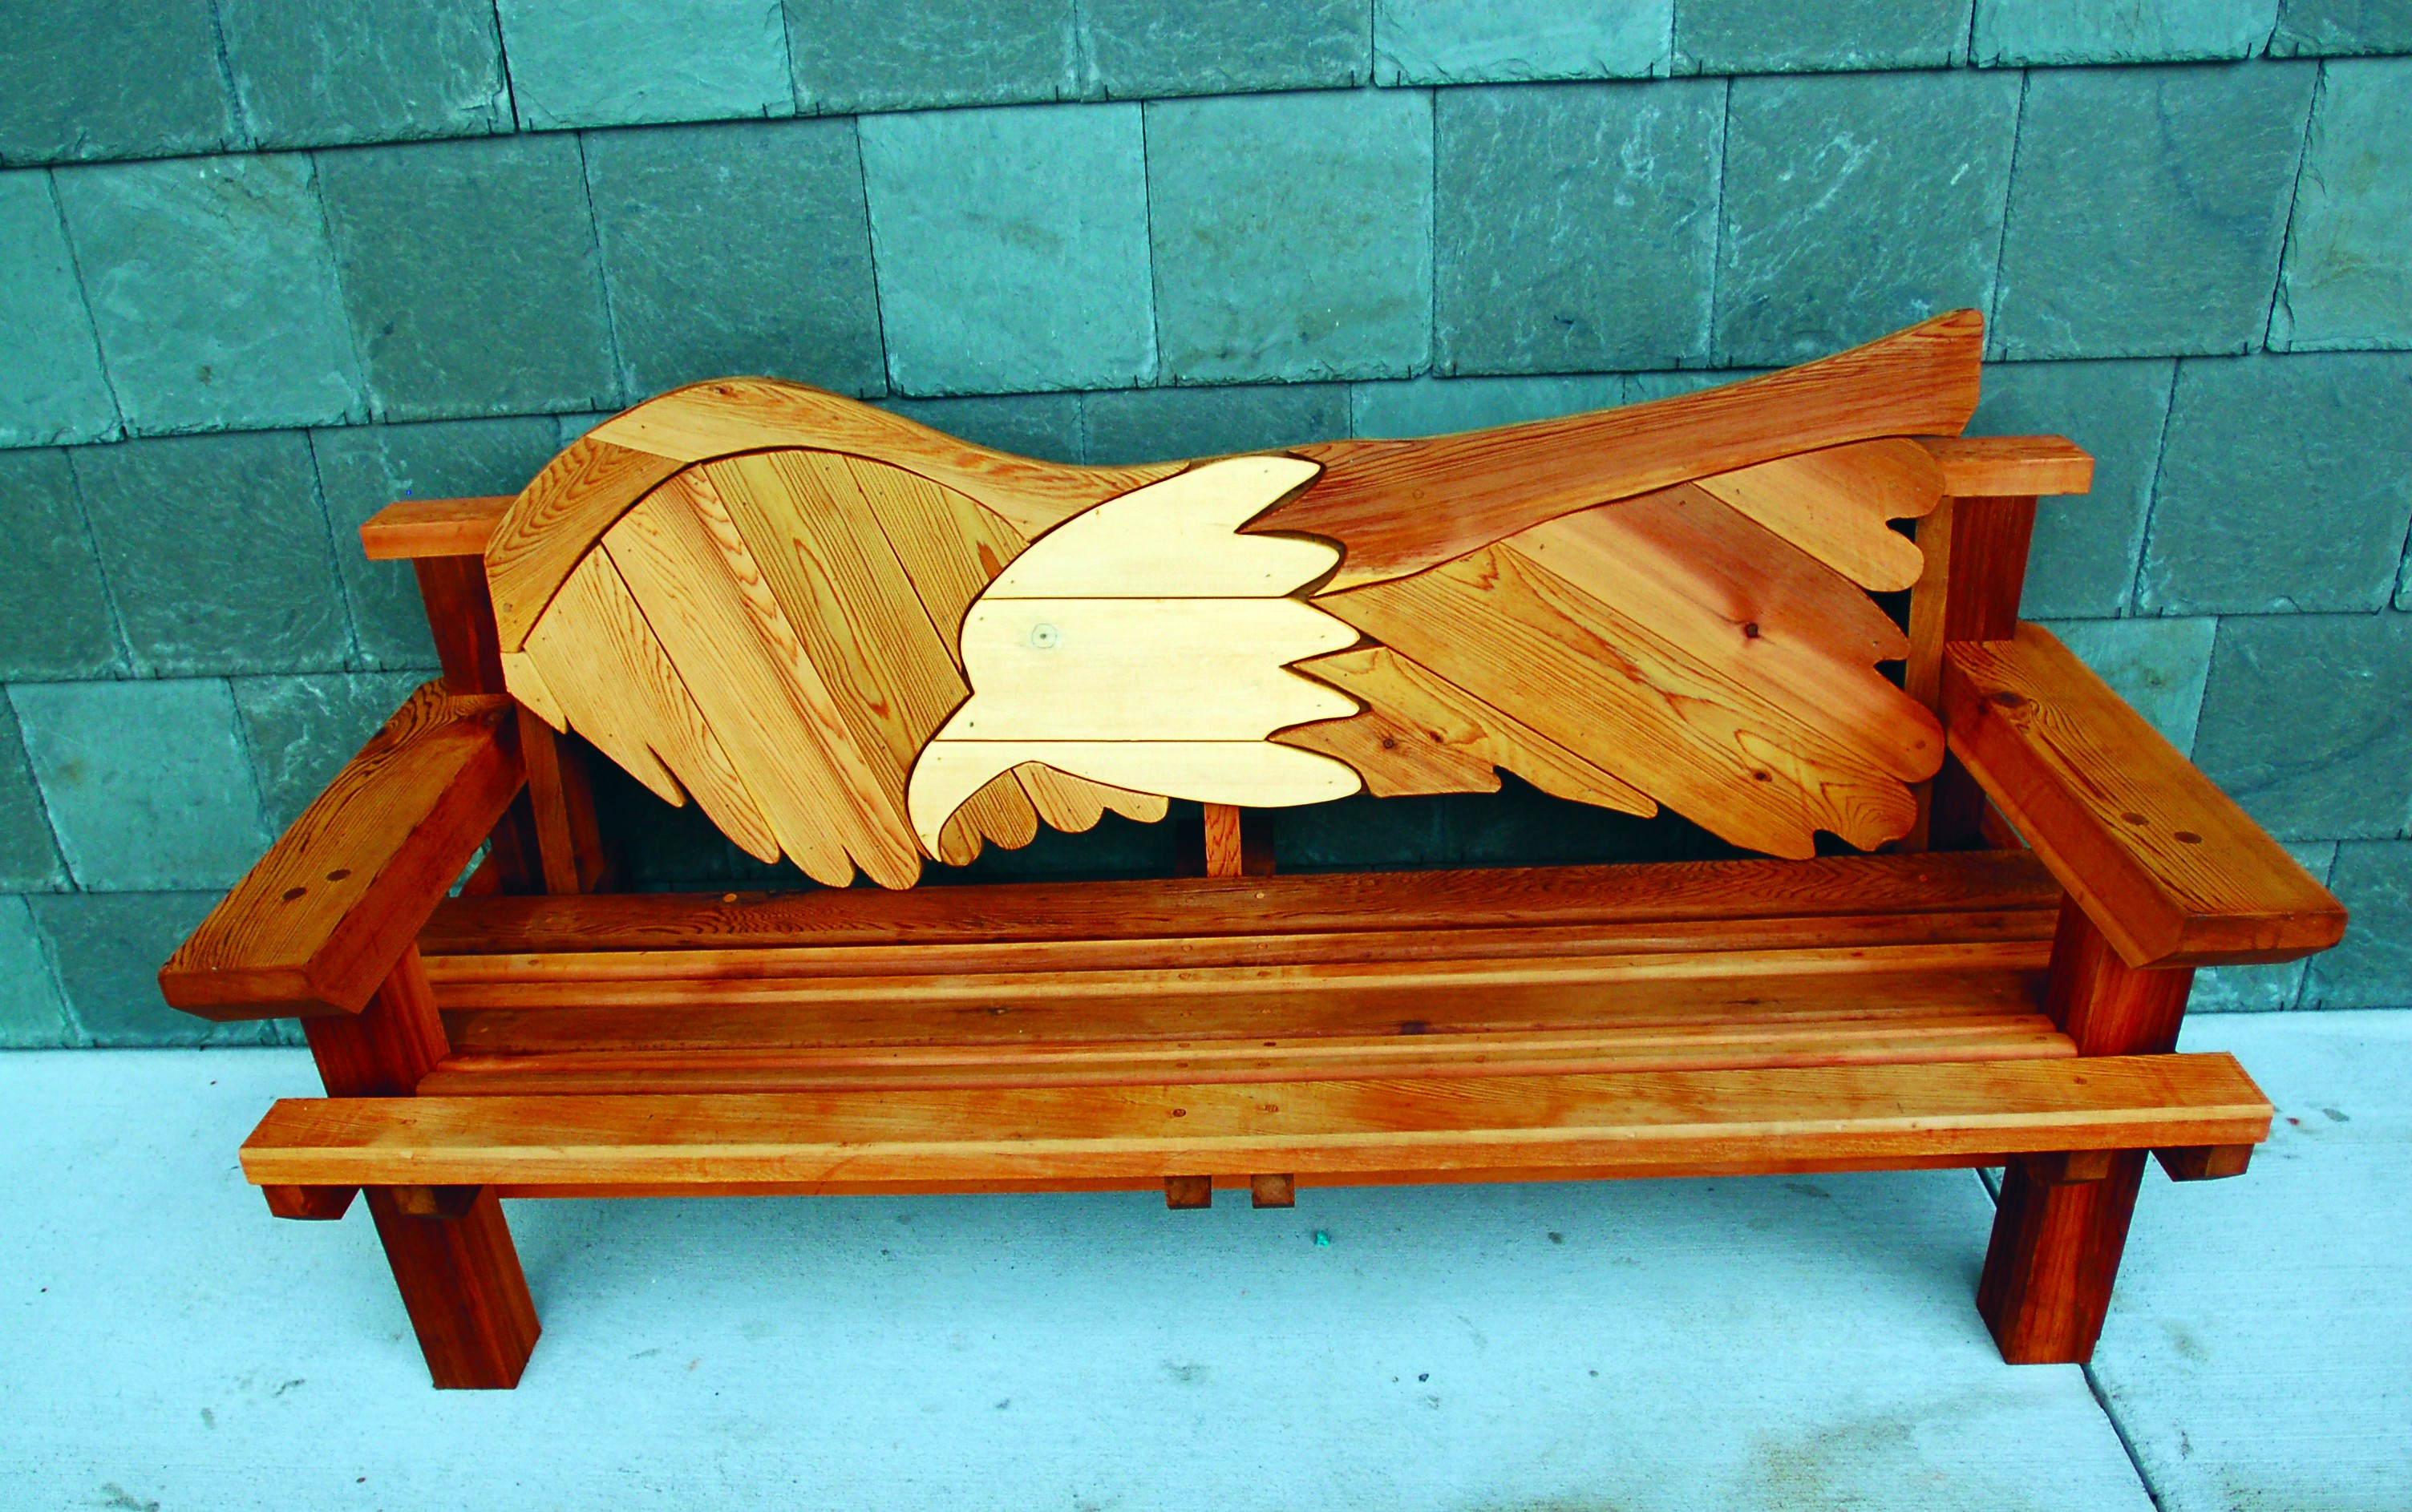 Woman Donates Bench To Public Library By Alaina Rochelle Medium